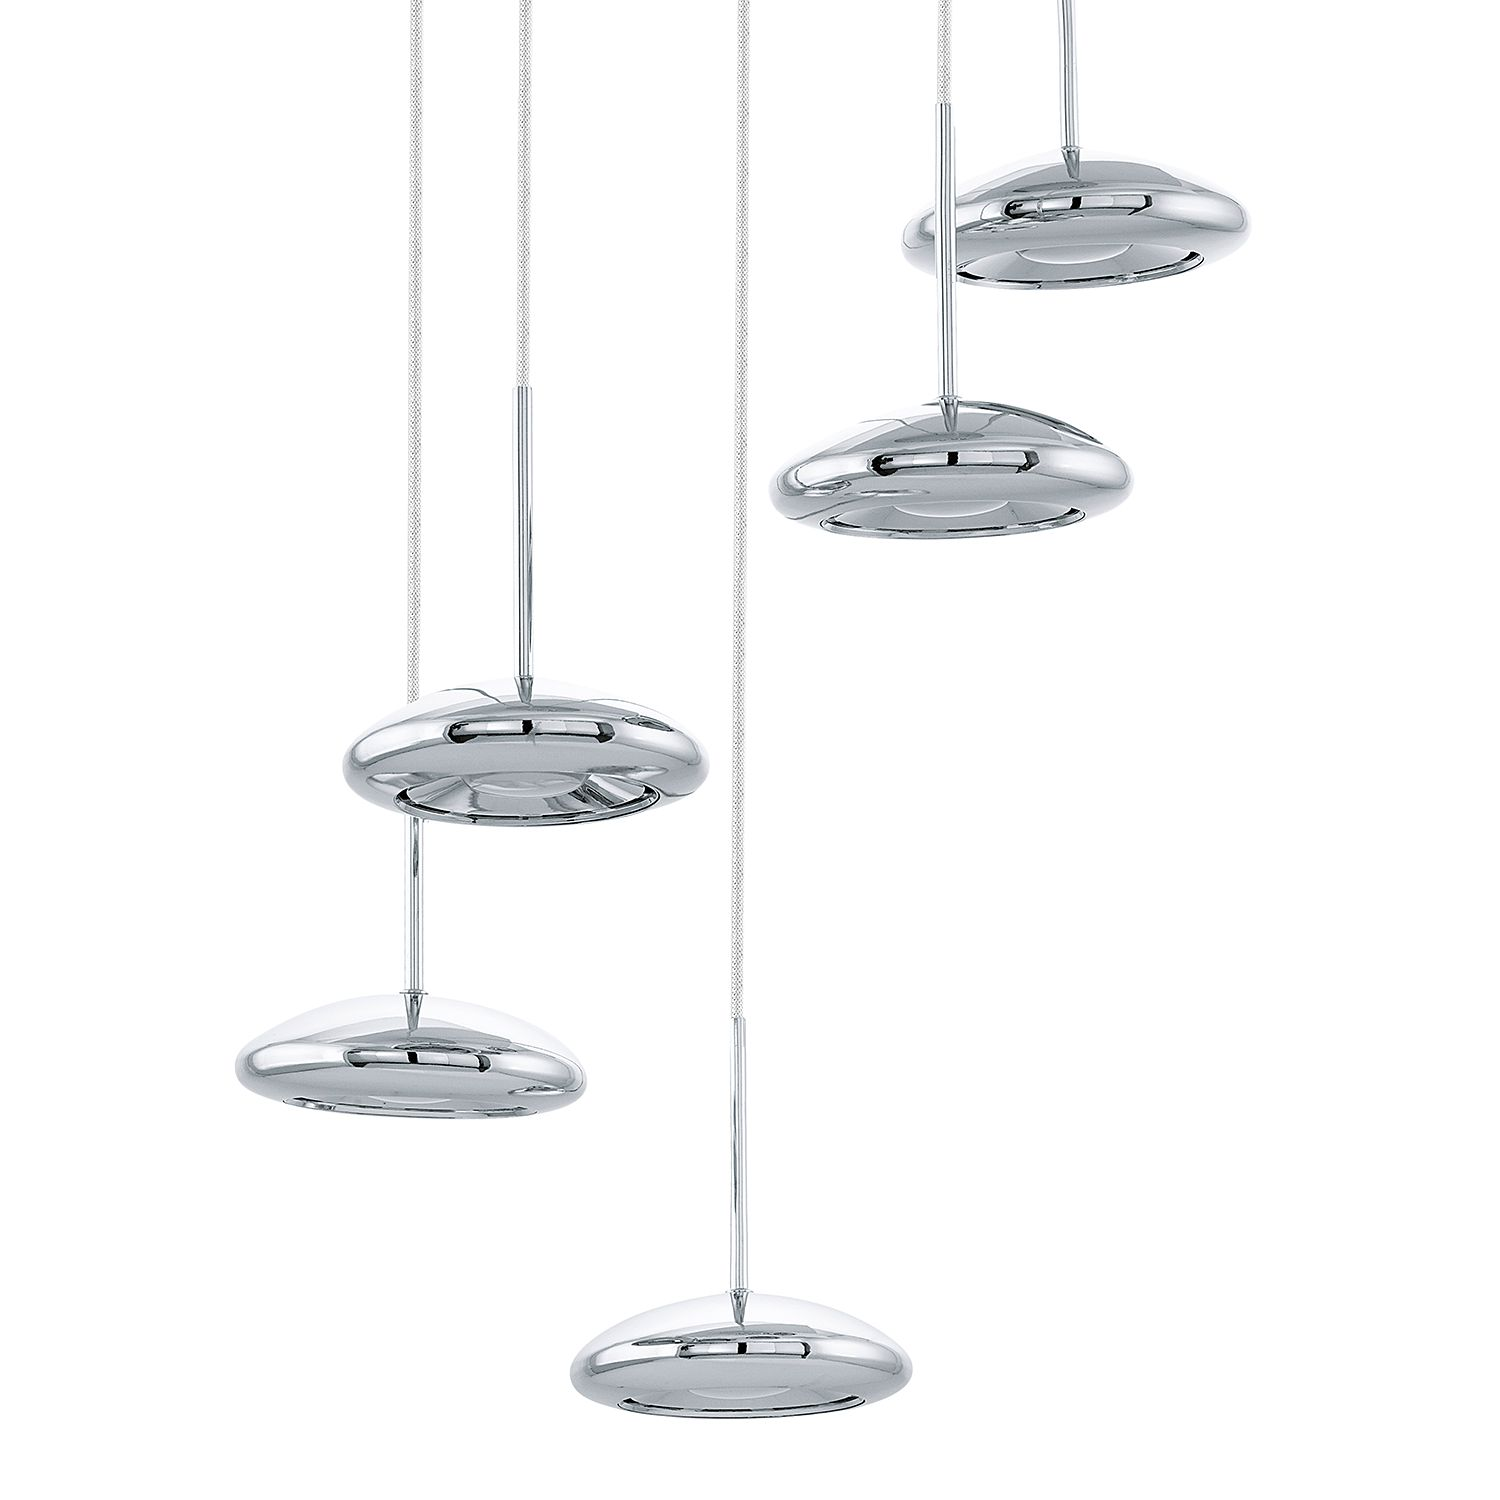 Suspension Tarugo III